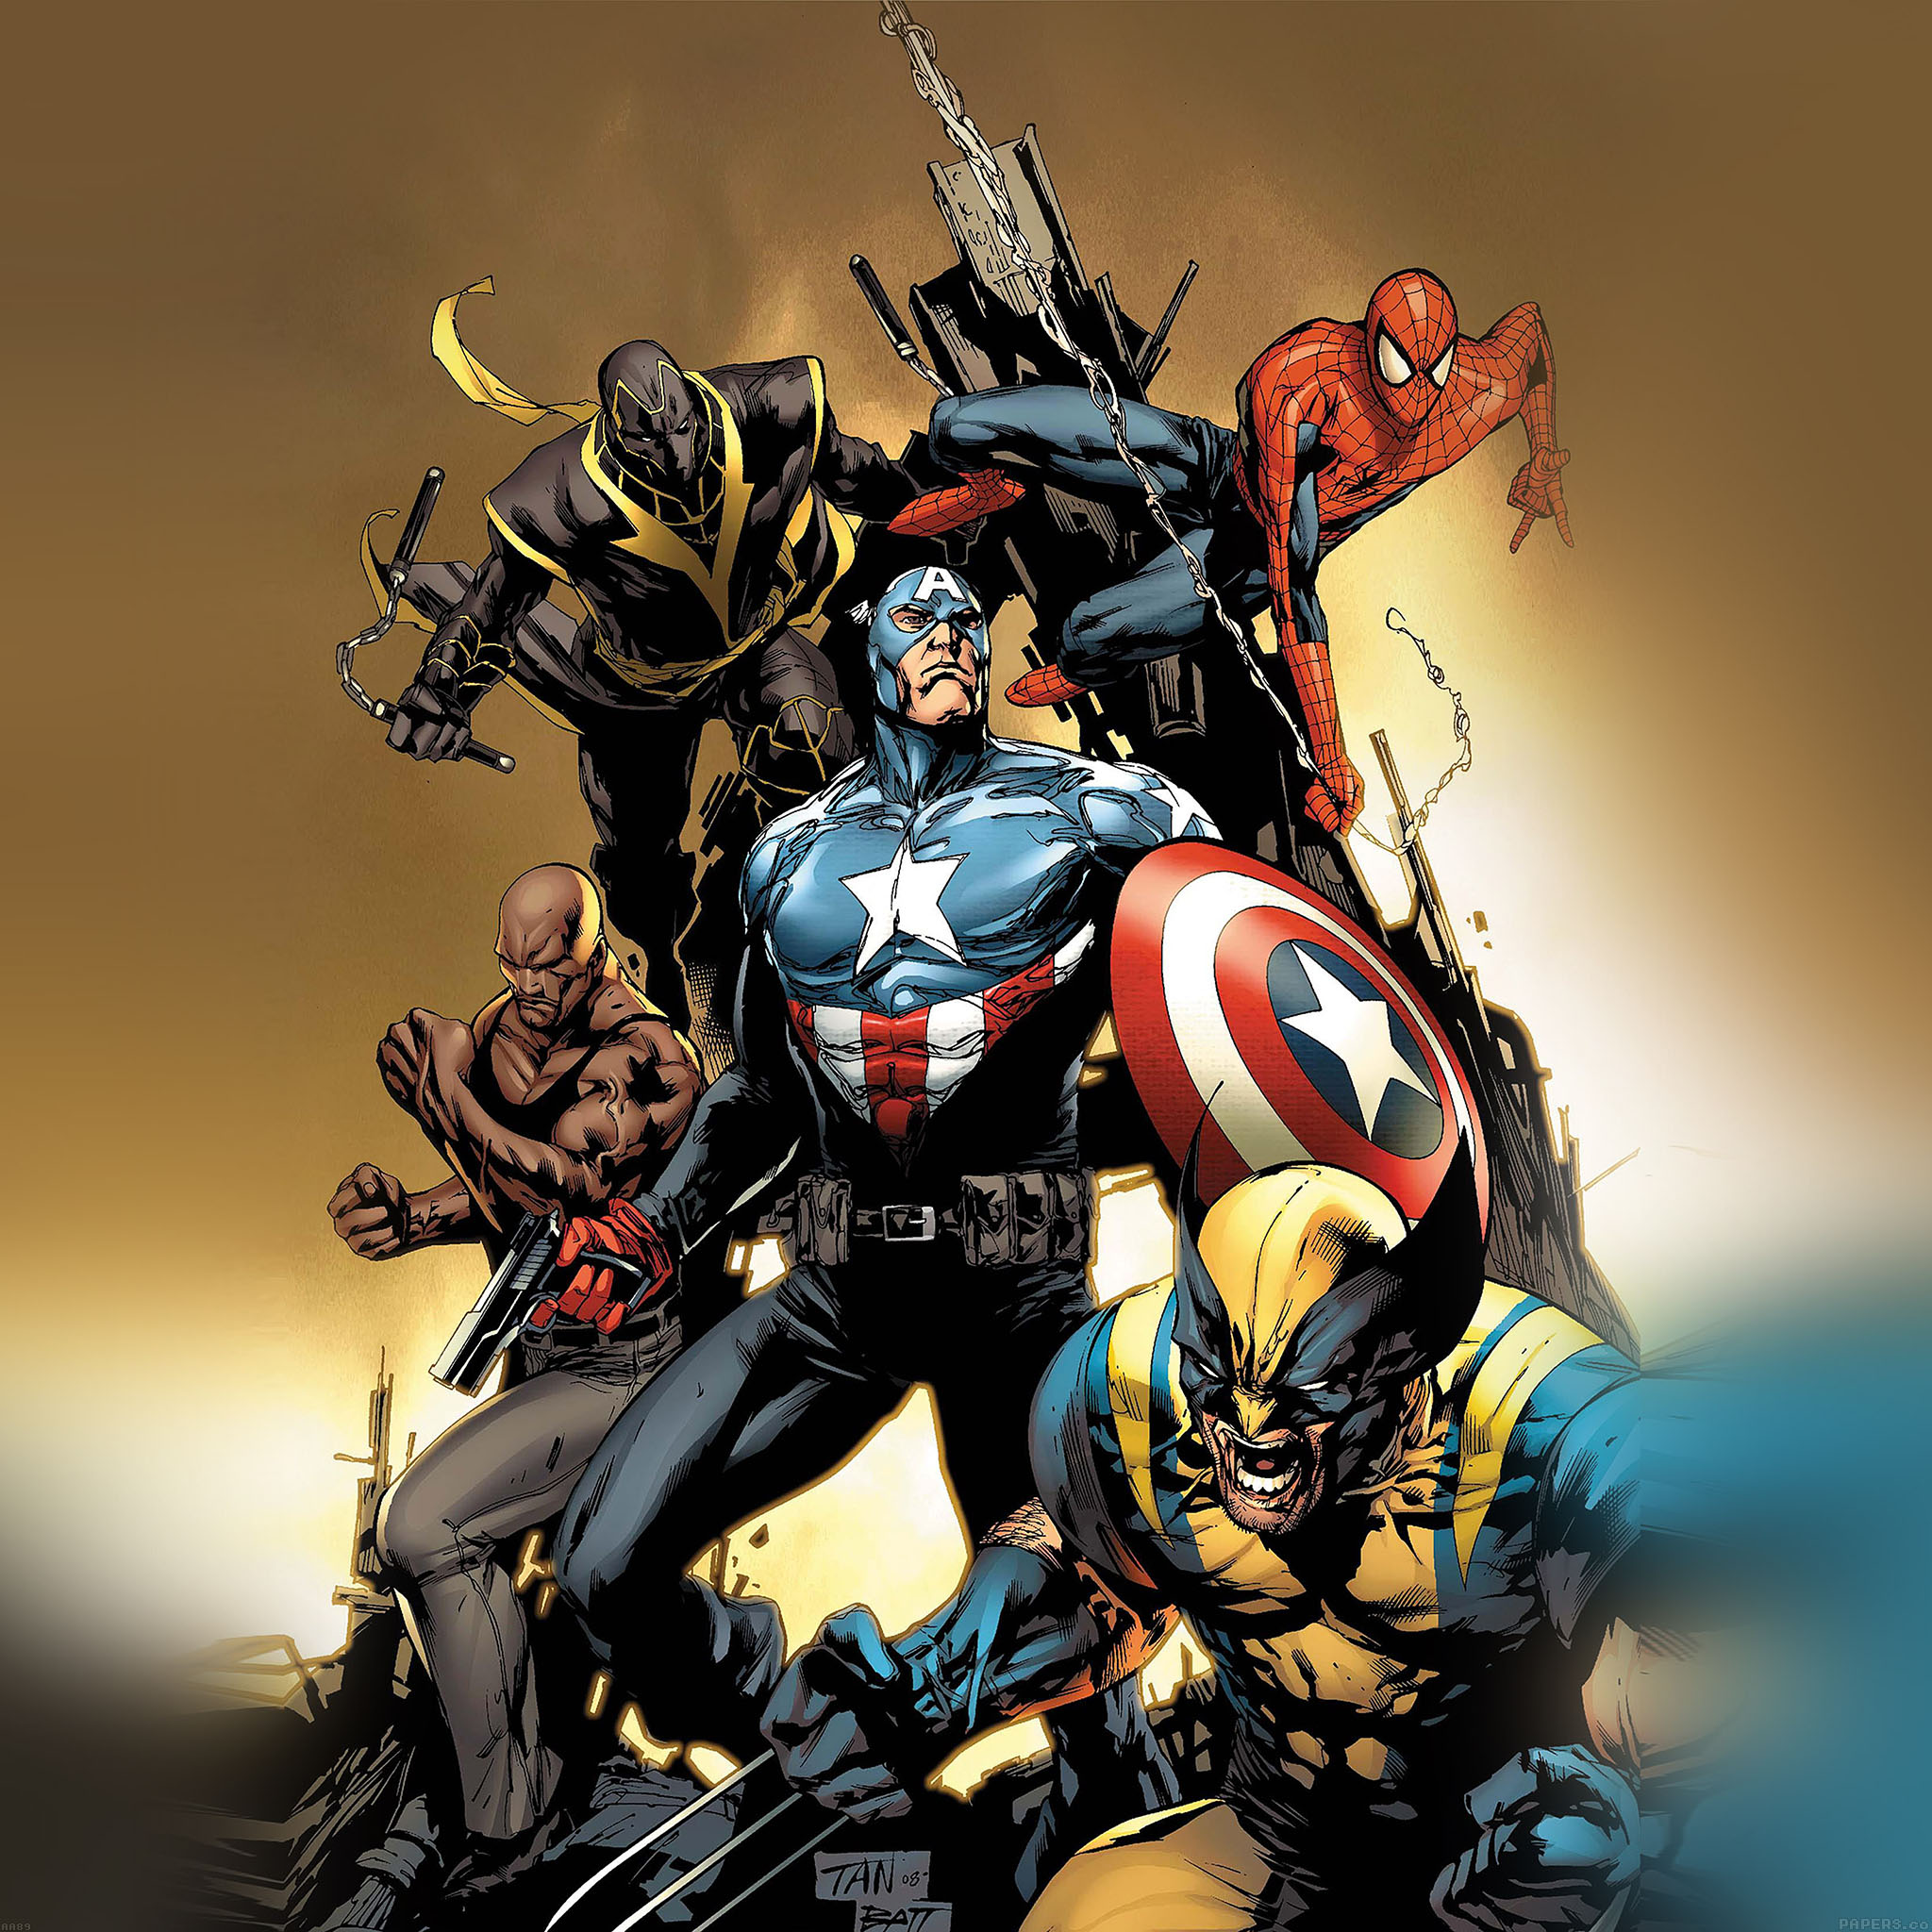 aa89-wallpaper-avengers-new-illust - papers.co